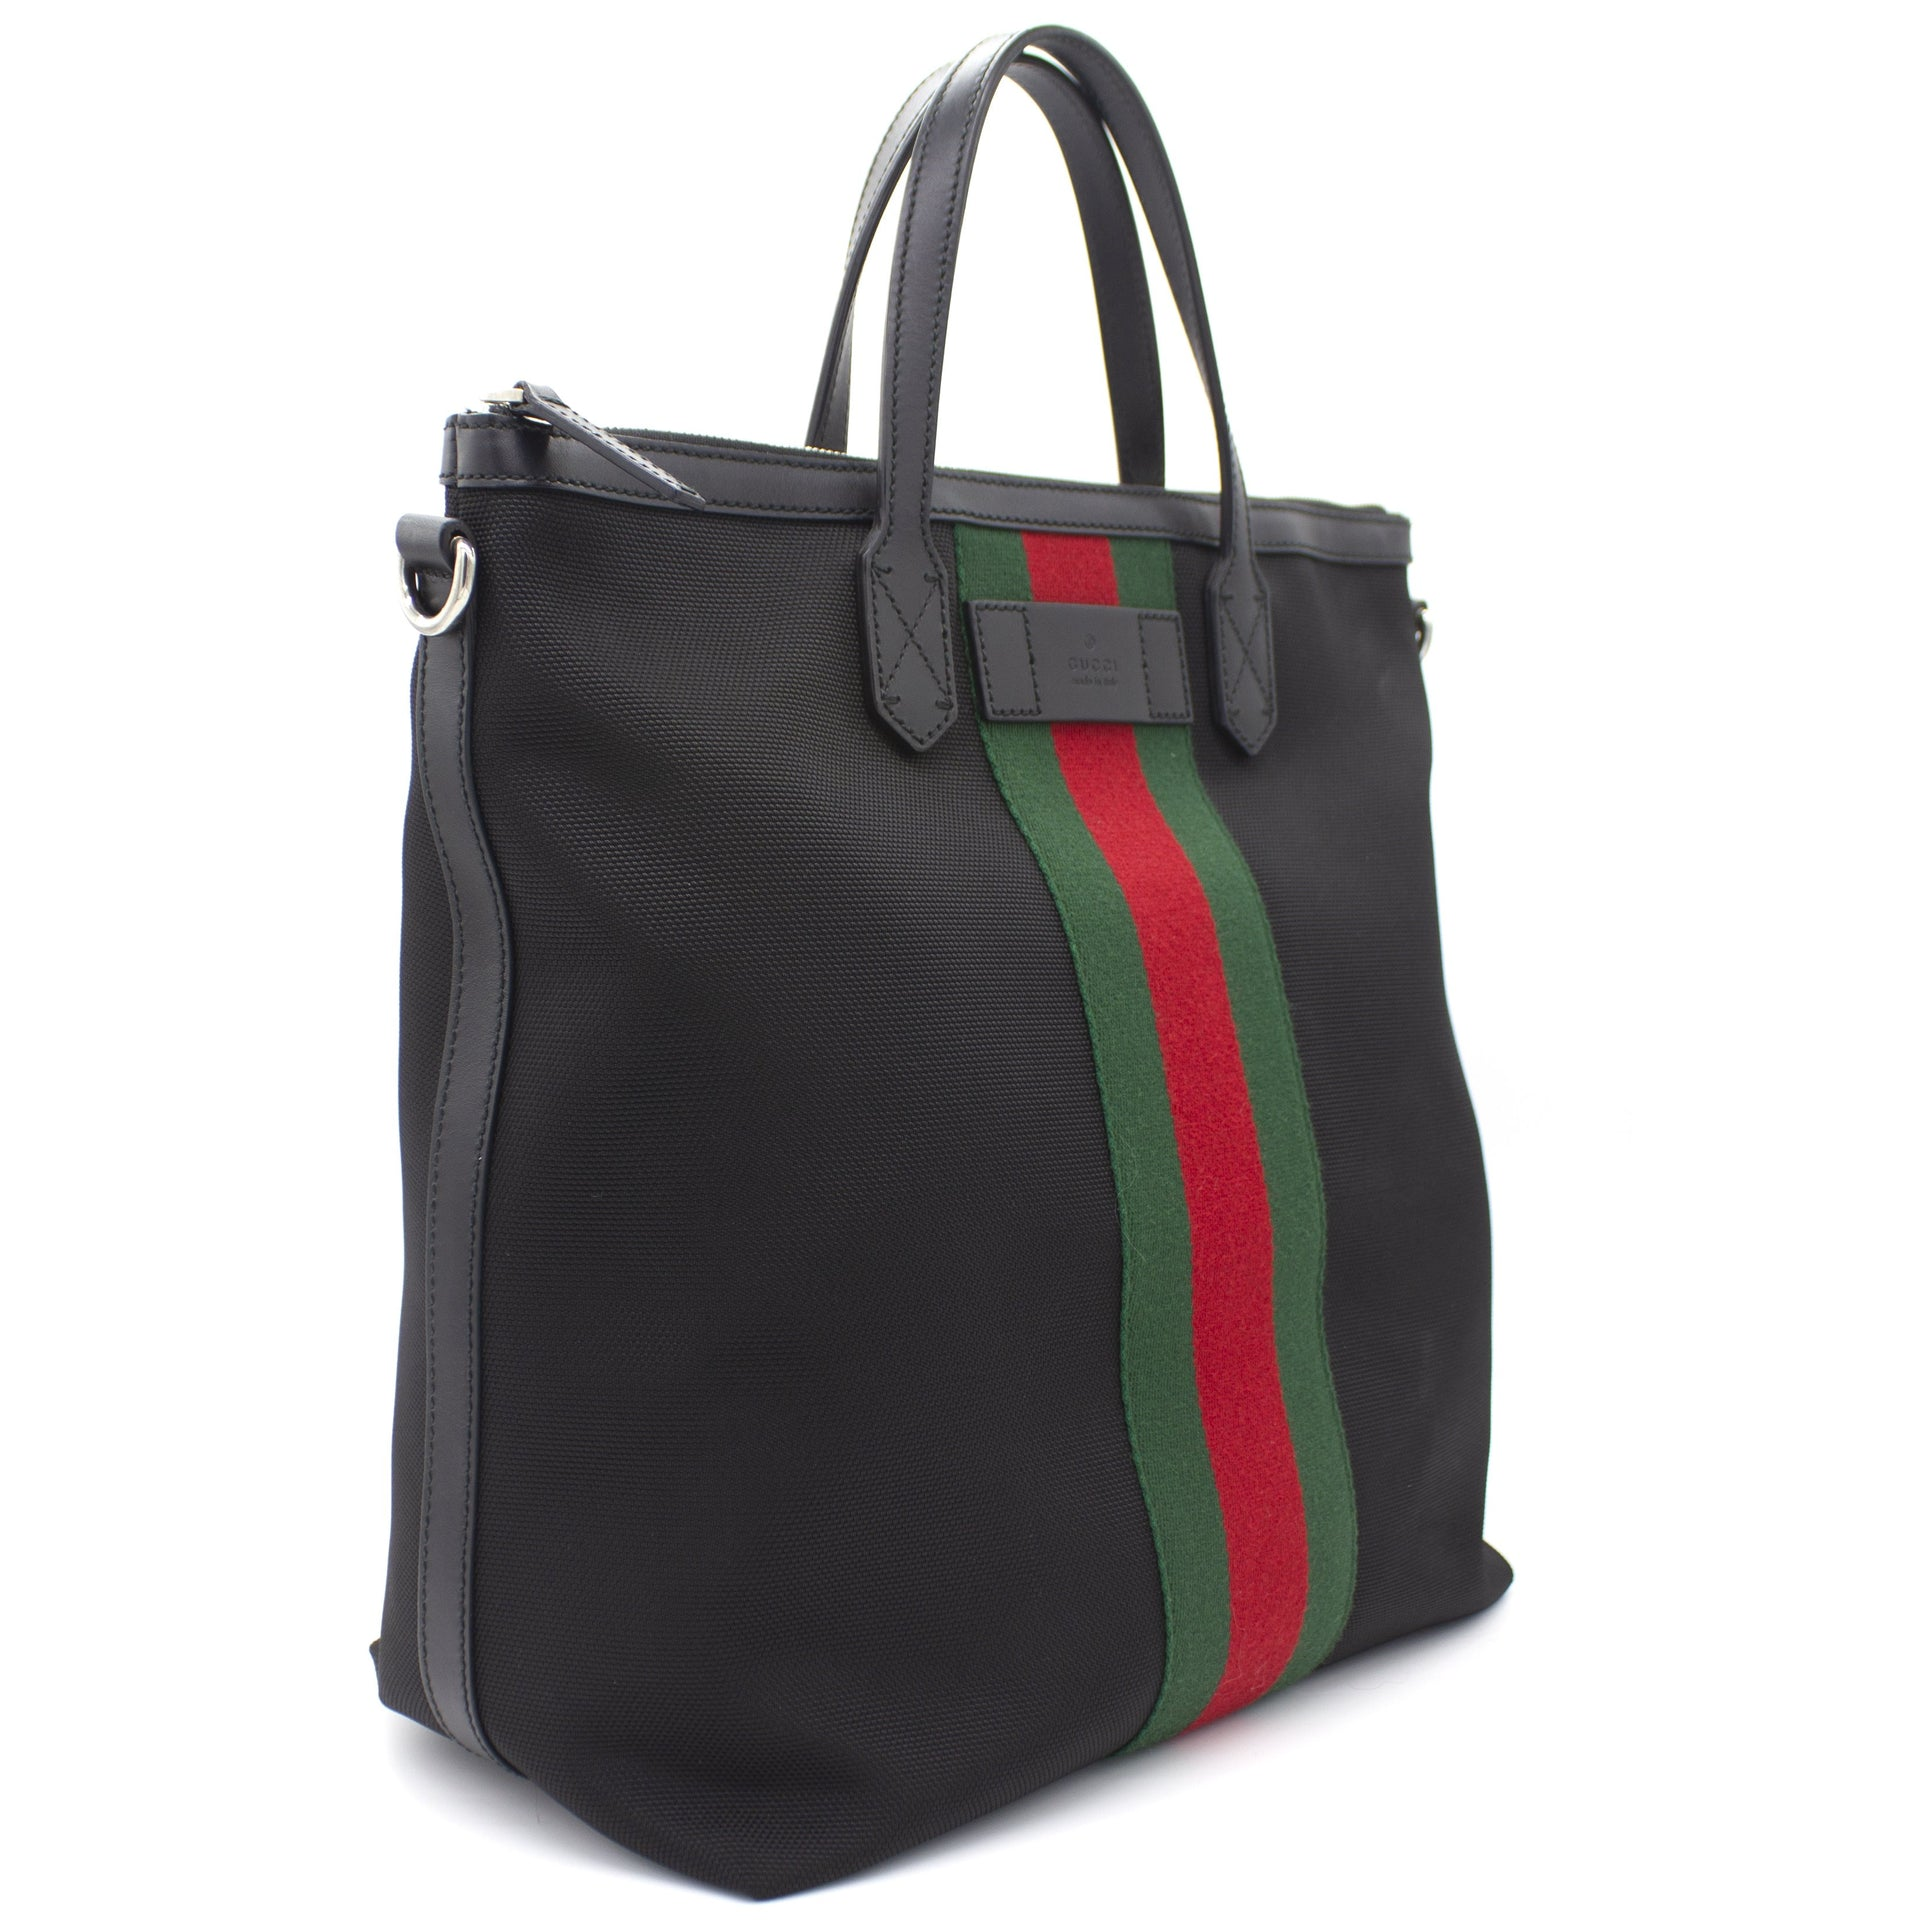 Techno Canvas Web Tote Bag Black